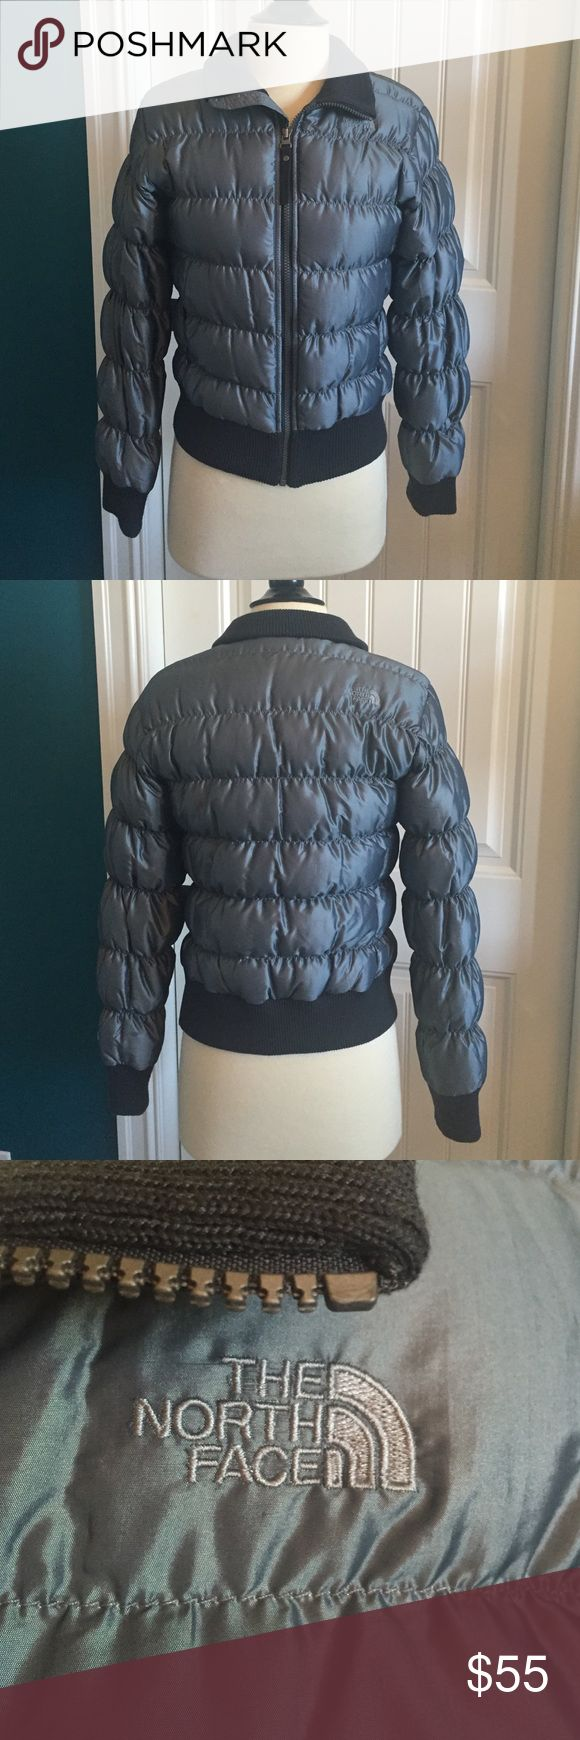 North Face Coat North Face goose down coat. Excellent condition. Dark grey/pewter color. No stains or holes. No trades The North Face Jackets & Coats Puffers